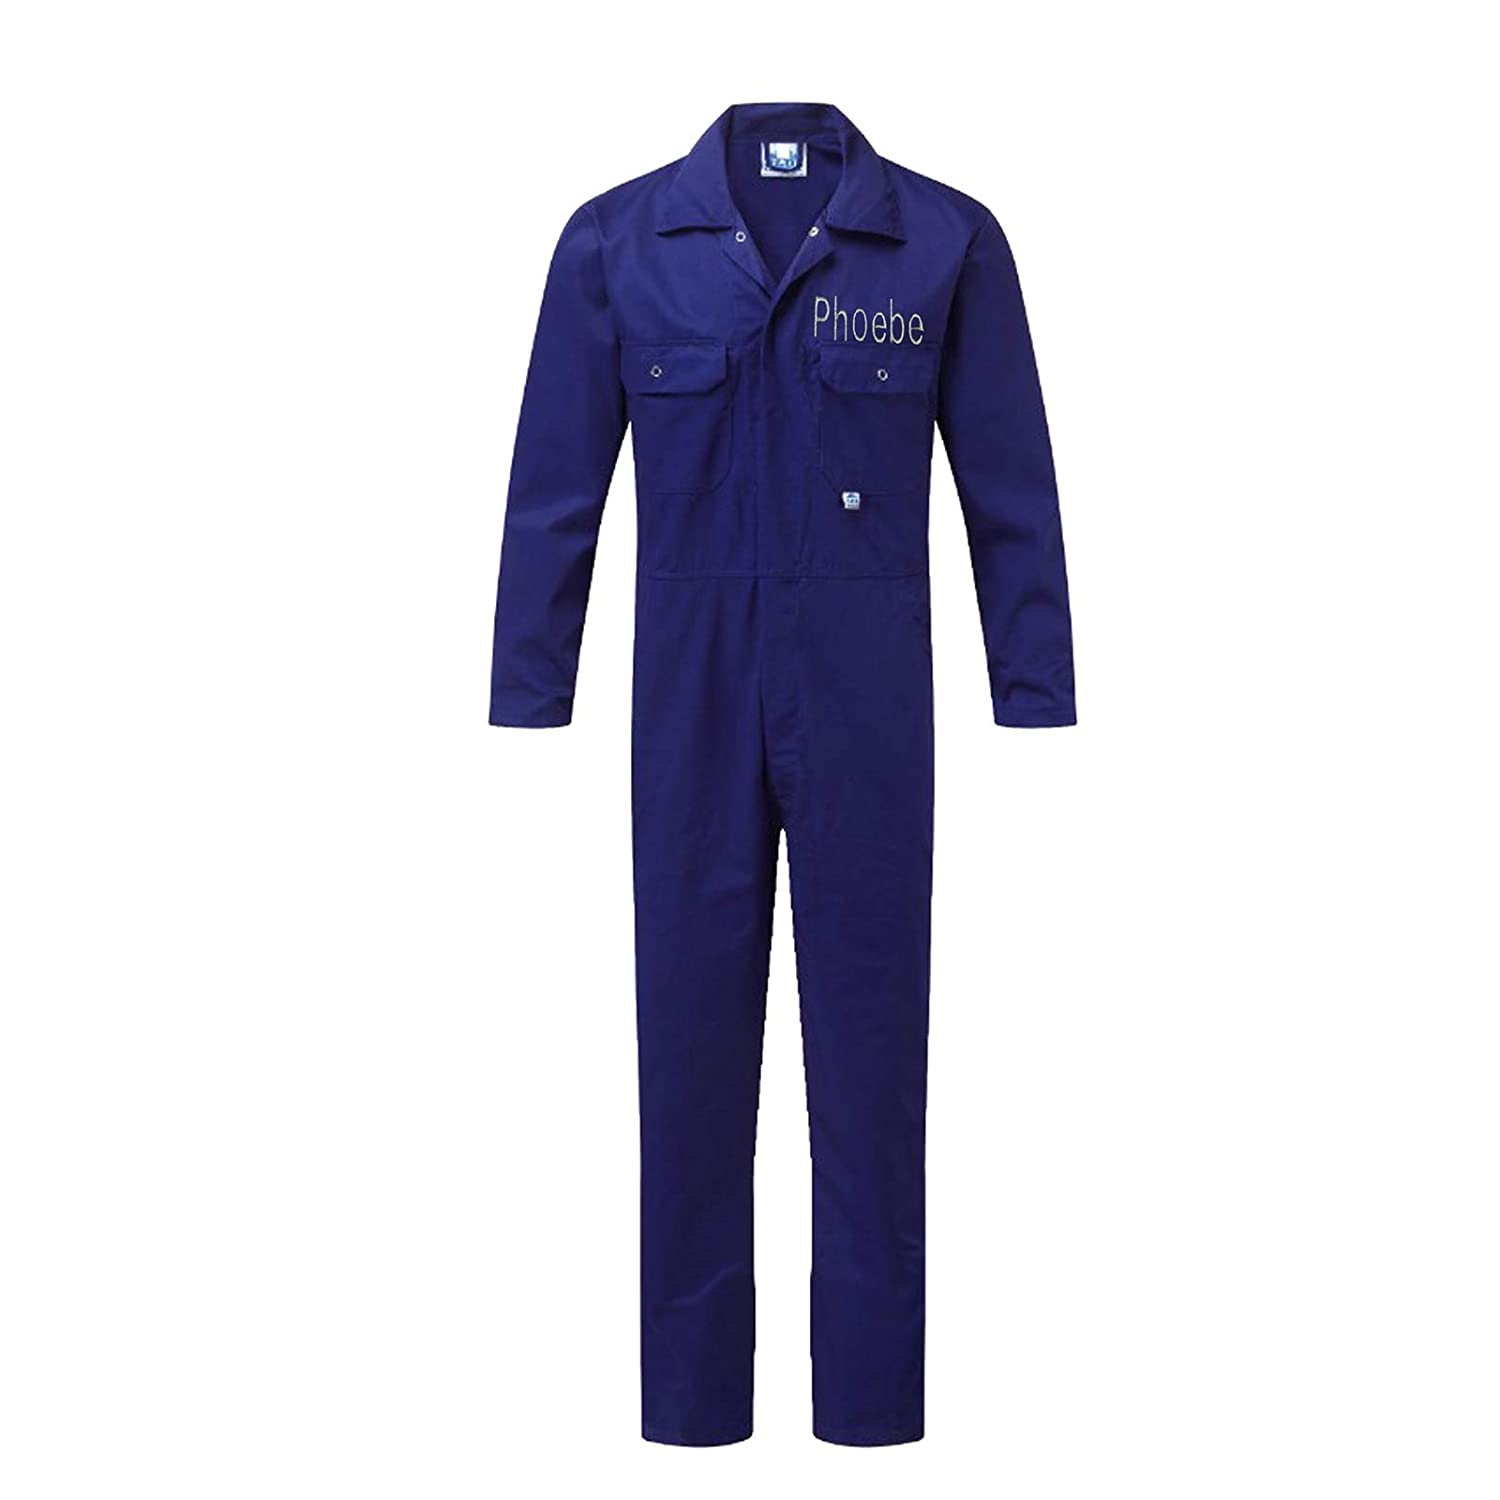 Personalised Children//Kids Boiler Suit//Coverall//Overall 1-7 Years Boy Girl Gift